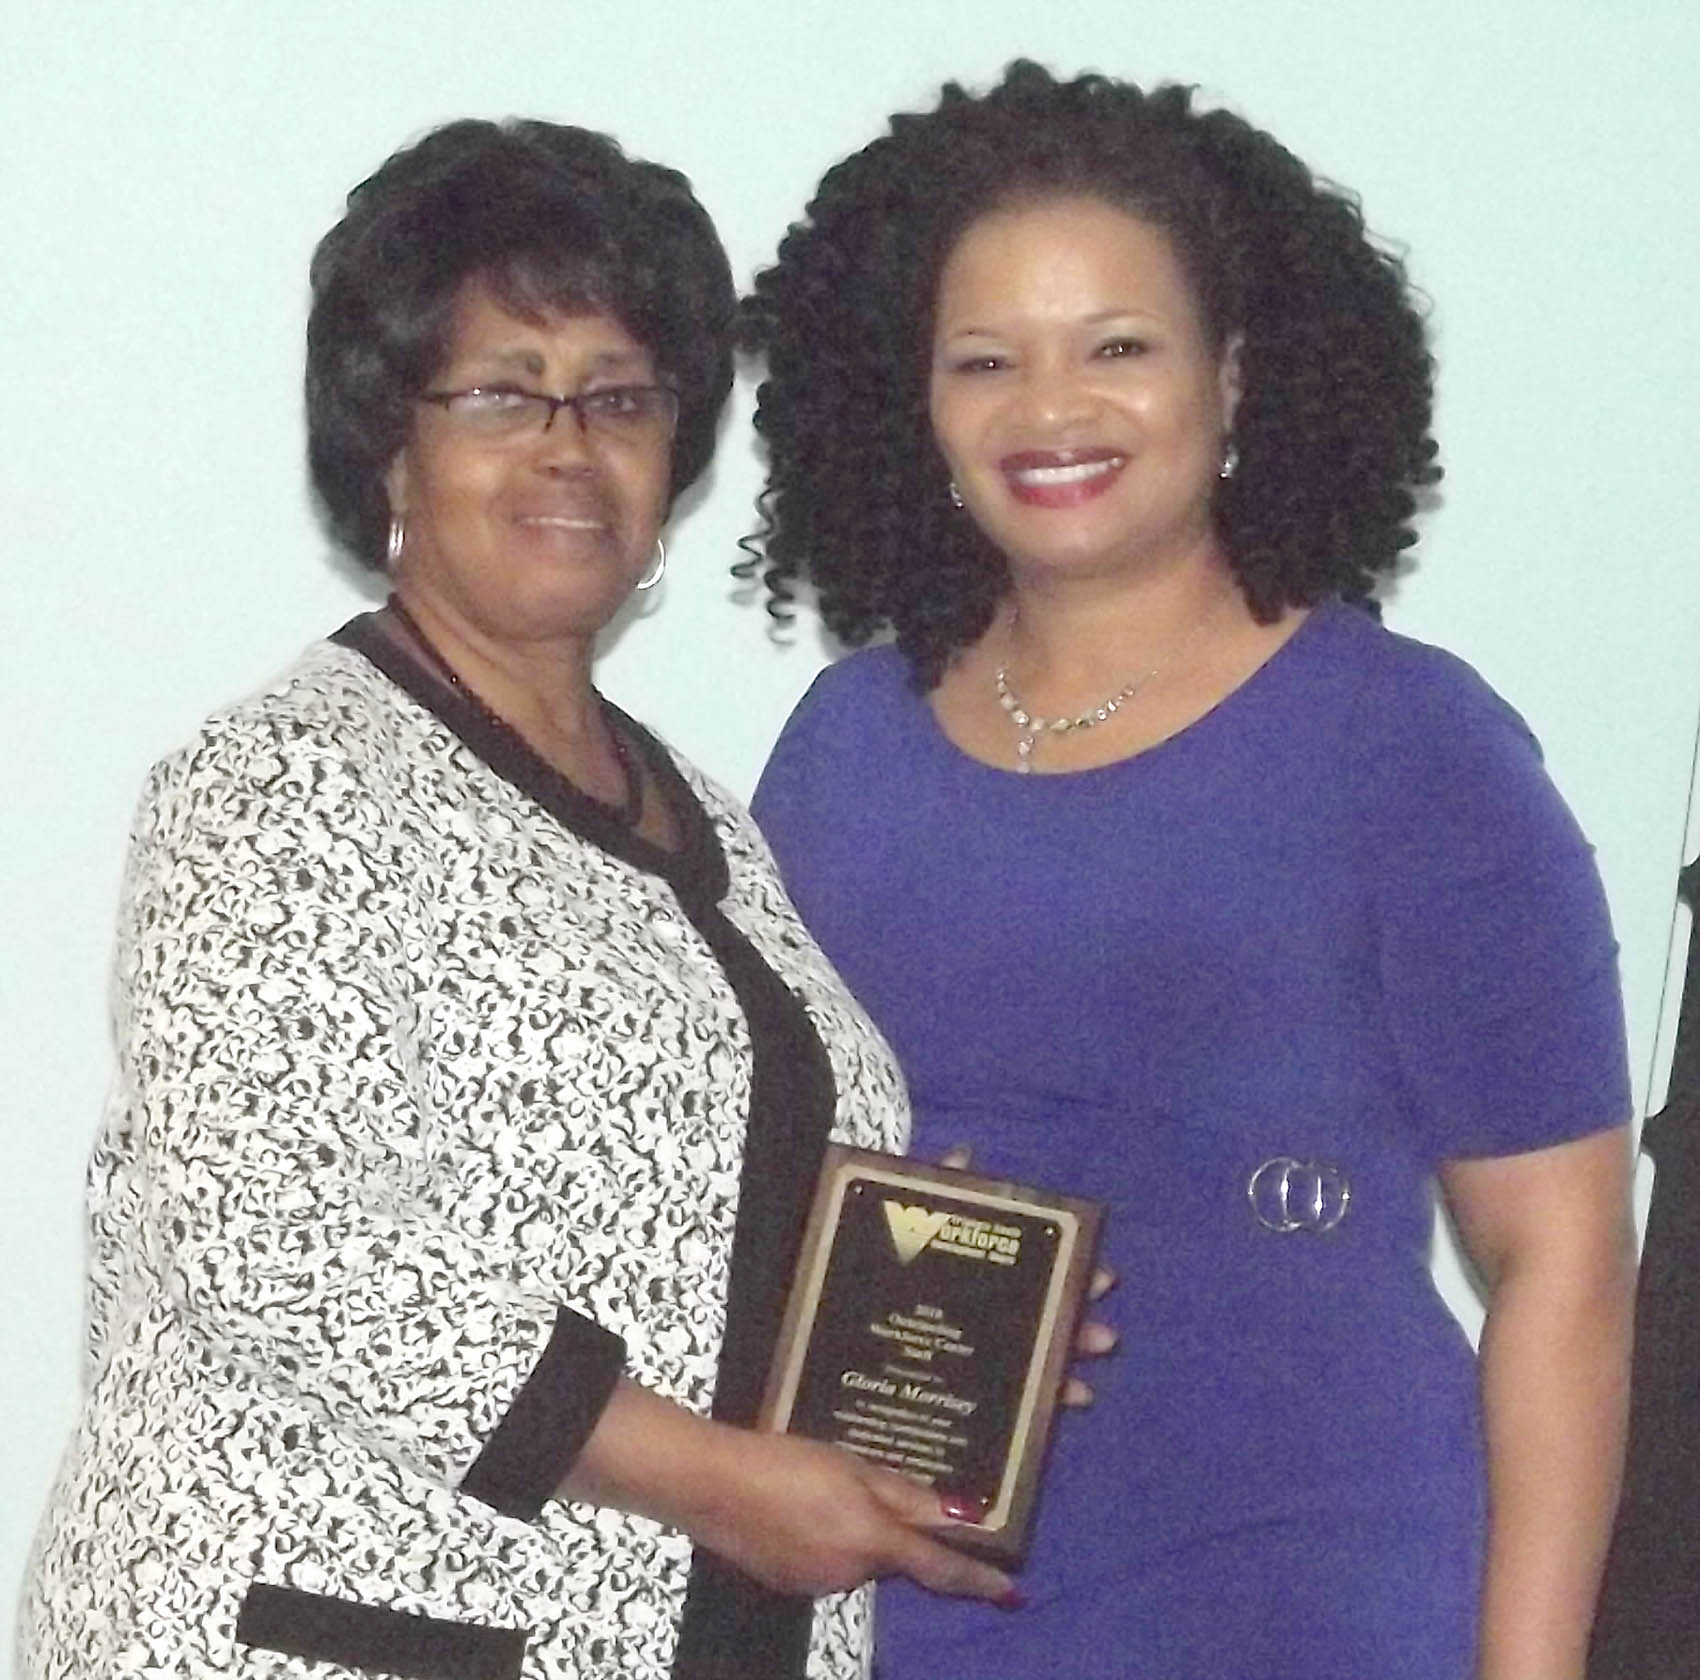 Click to enlarge,  Gloria Morrisey, of Sampson County, received the Outstanding Workforce Center Staff Award at the 7th Annual Triangle South Workforce Development Board (TSWDB) Awards Banquet held Wednesday, Dec. 5, at the Central Carolina Community College Harnett Health Sciences Center in Lillington. Presenting the award was Rosalind Cross, TSWDB Director.